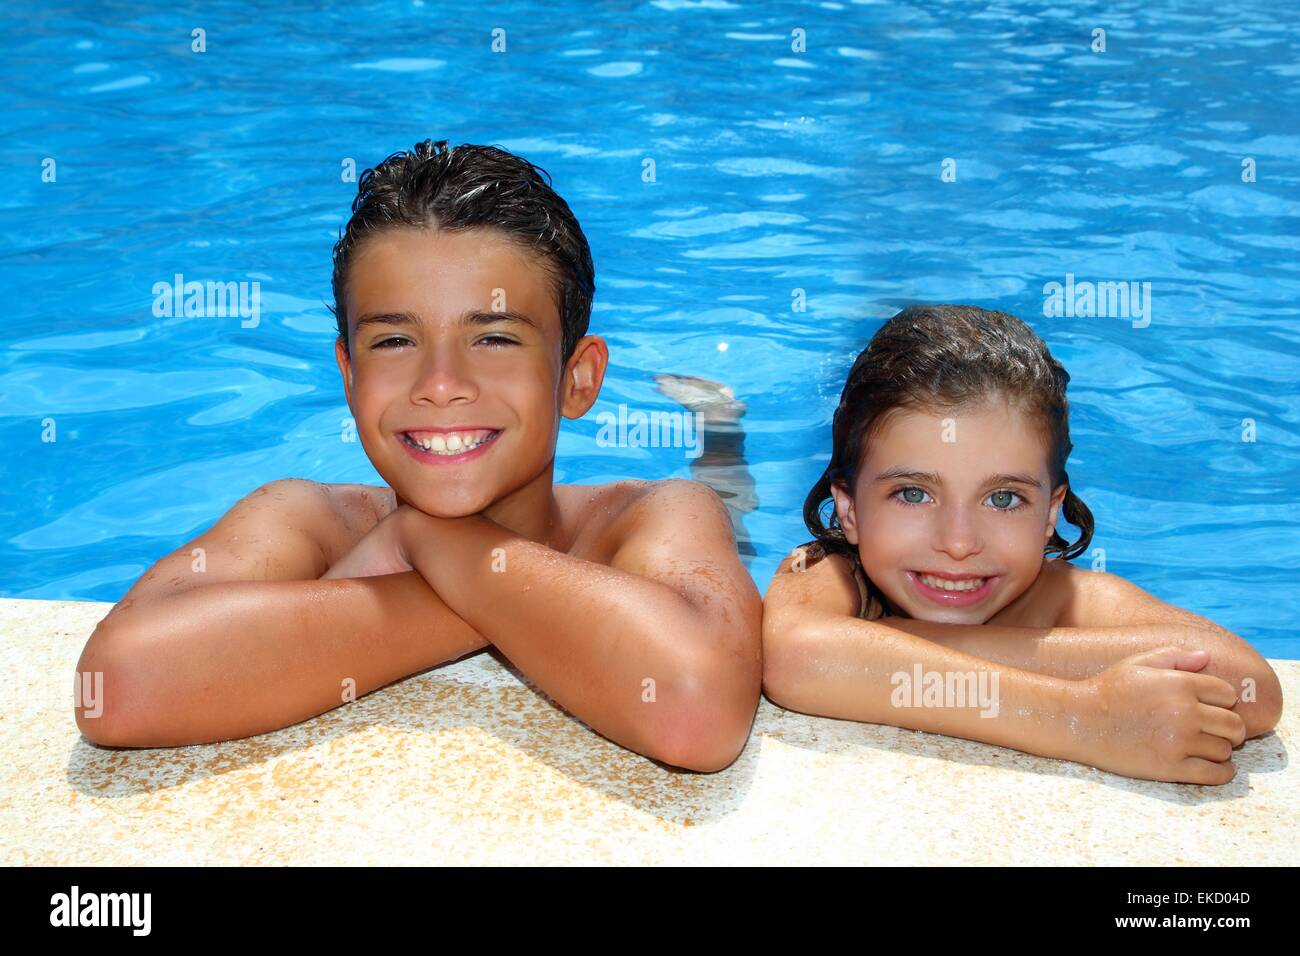 teen boy and little girl summer vacation in blue pool